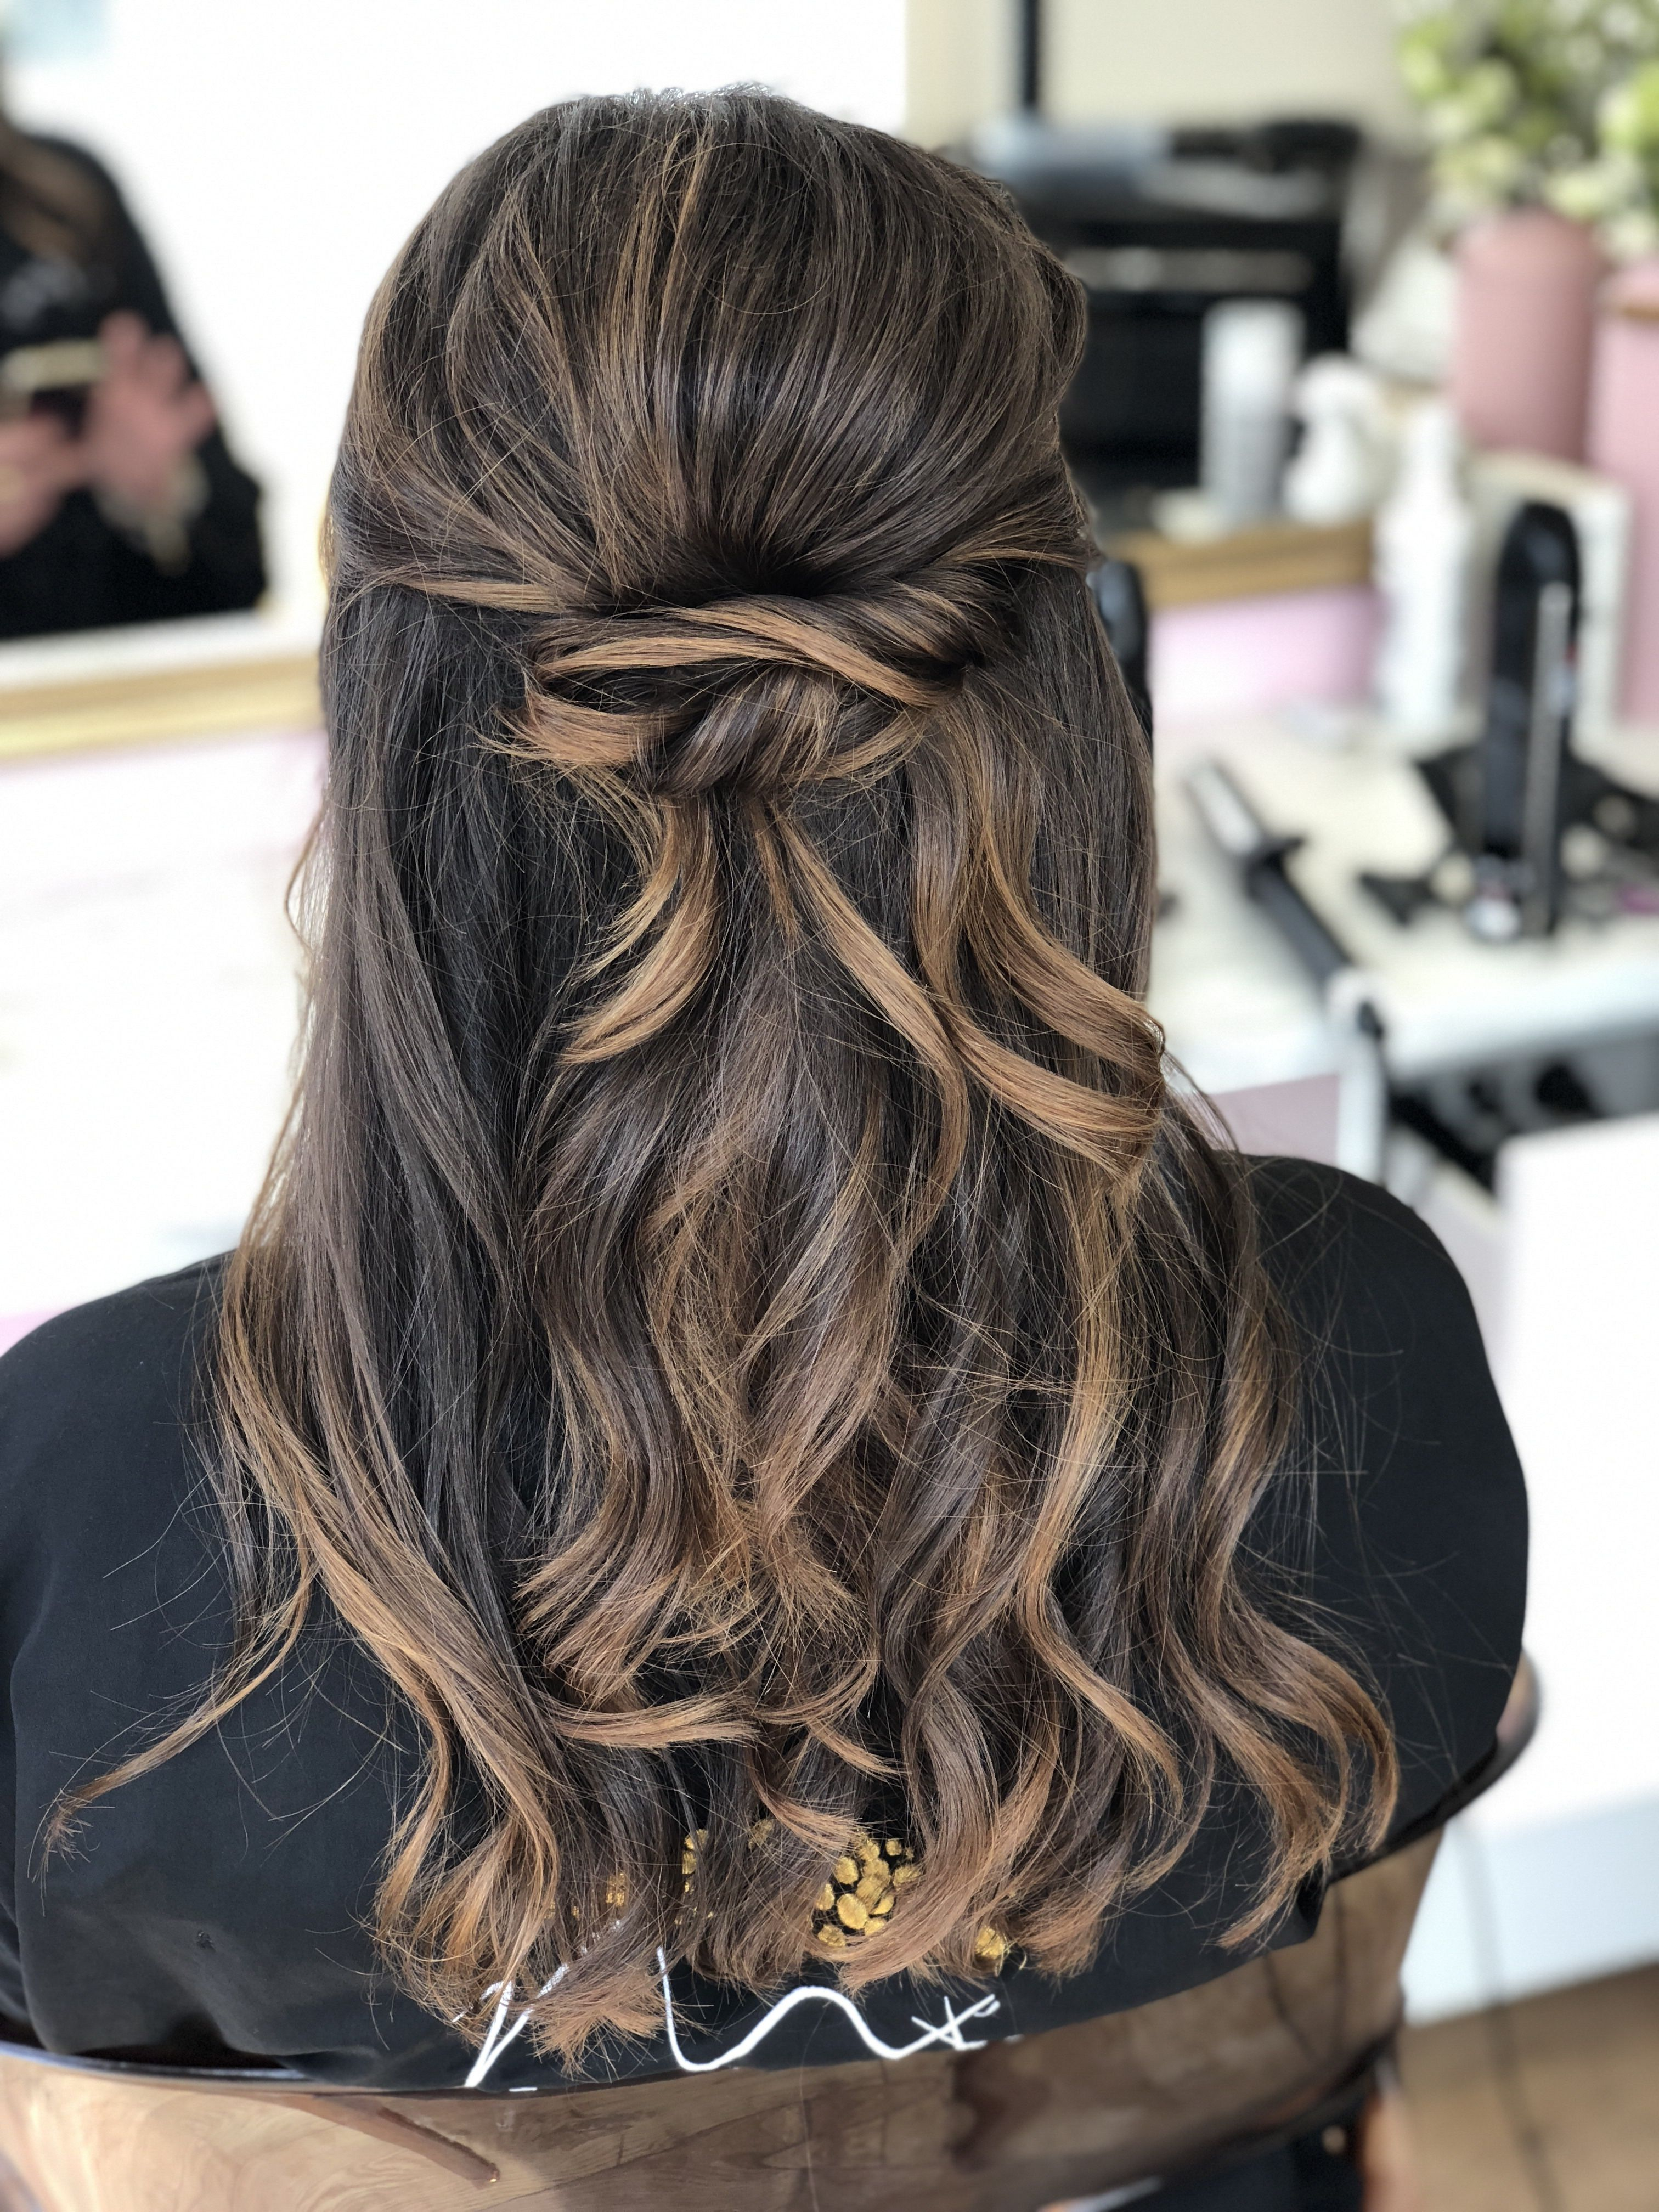 Demi Attache Wavy Hair Ghd Bride Hairstyle Coiffure Mariage